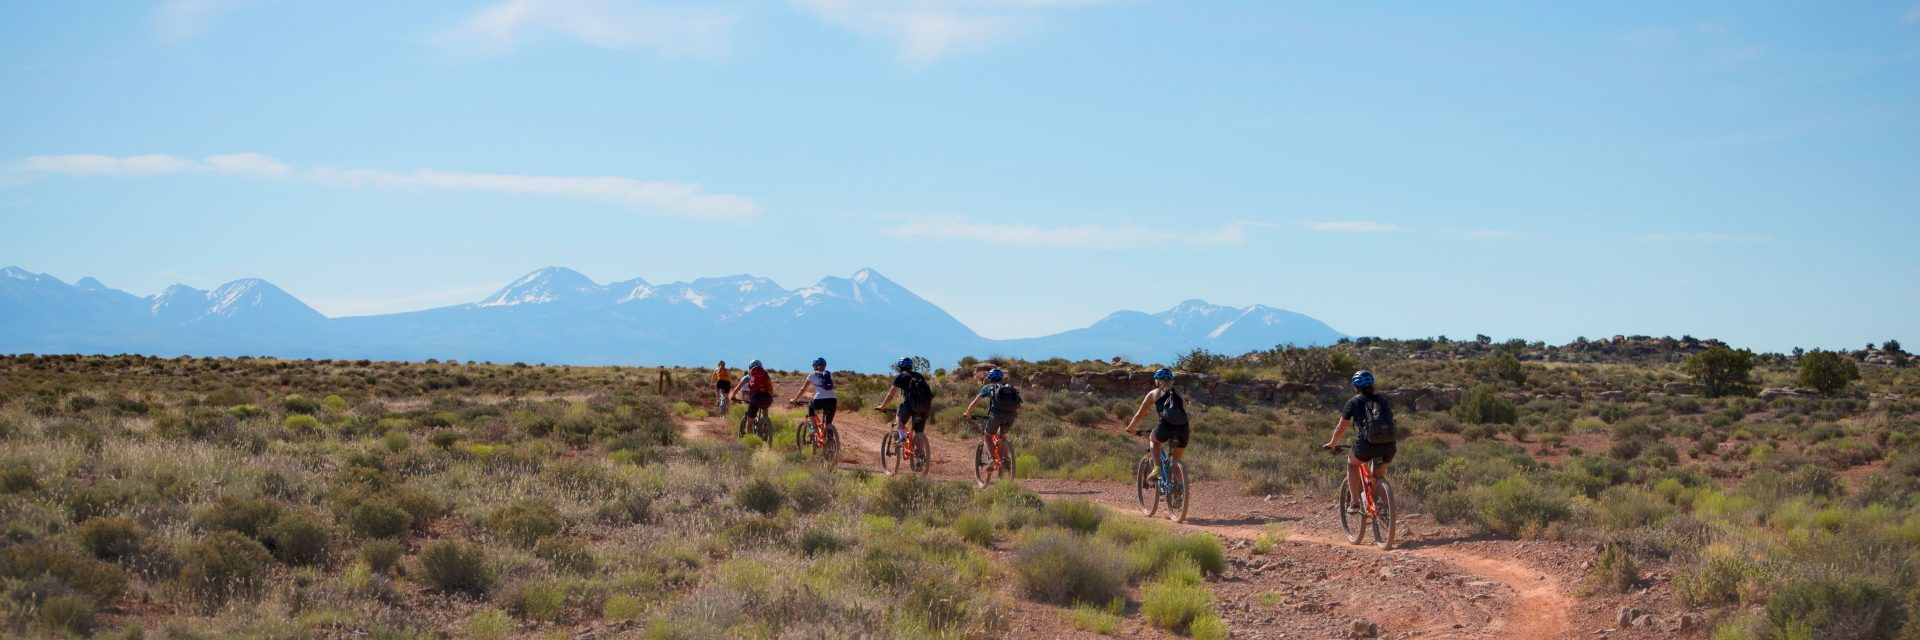 Riders follow their guide up the Courthouse Loop Trail north of Moab UT